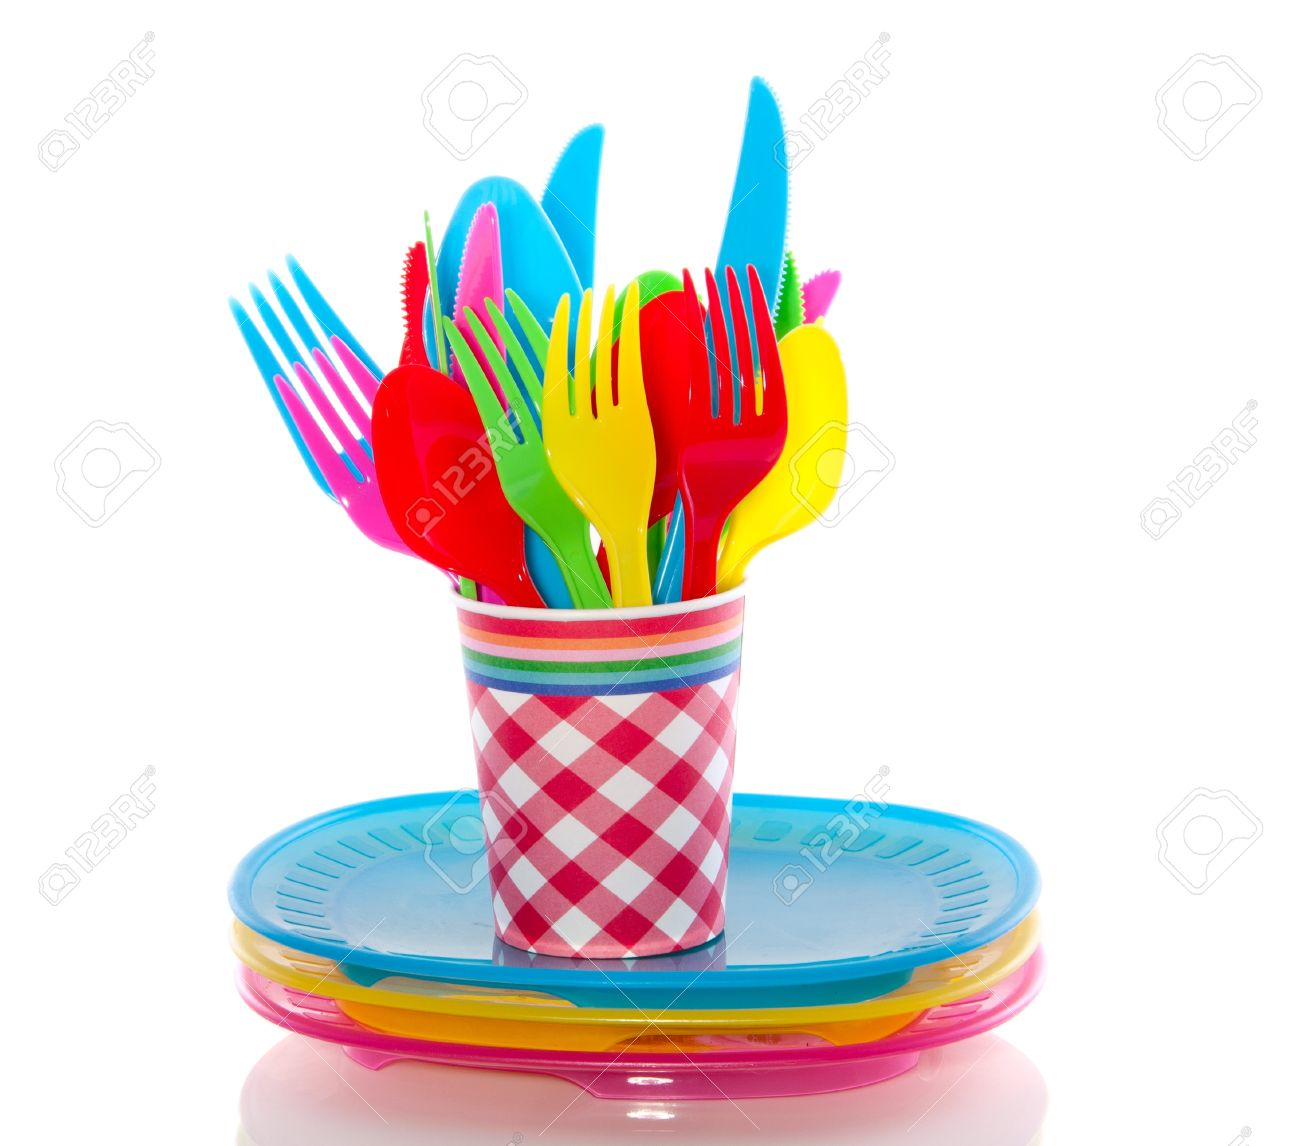 colorful plastic cutlery in a cup on plates isolated over white Stock Photo - 18706617  sc 1 st  123RF.com & Colorful Plastic Cutlery In A Cup On Plates Isolated Over White ...